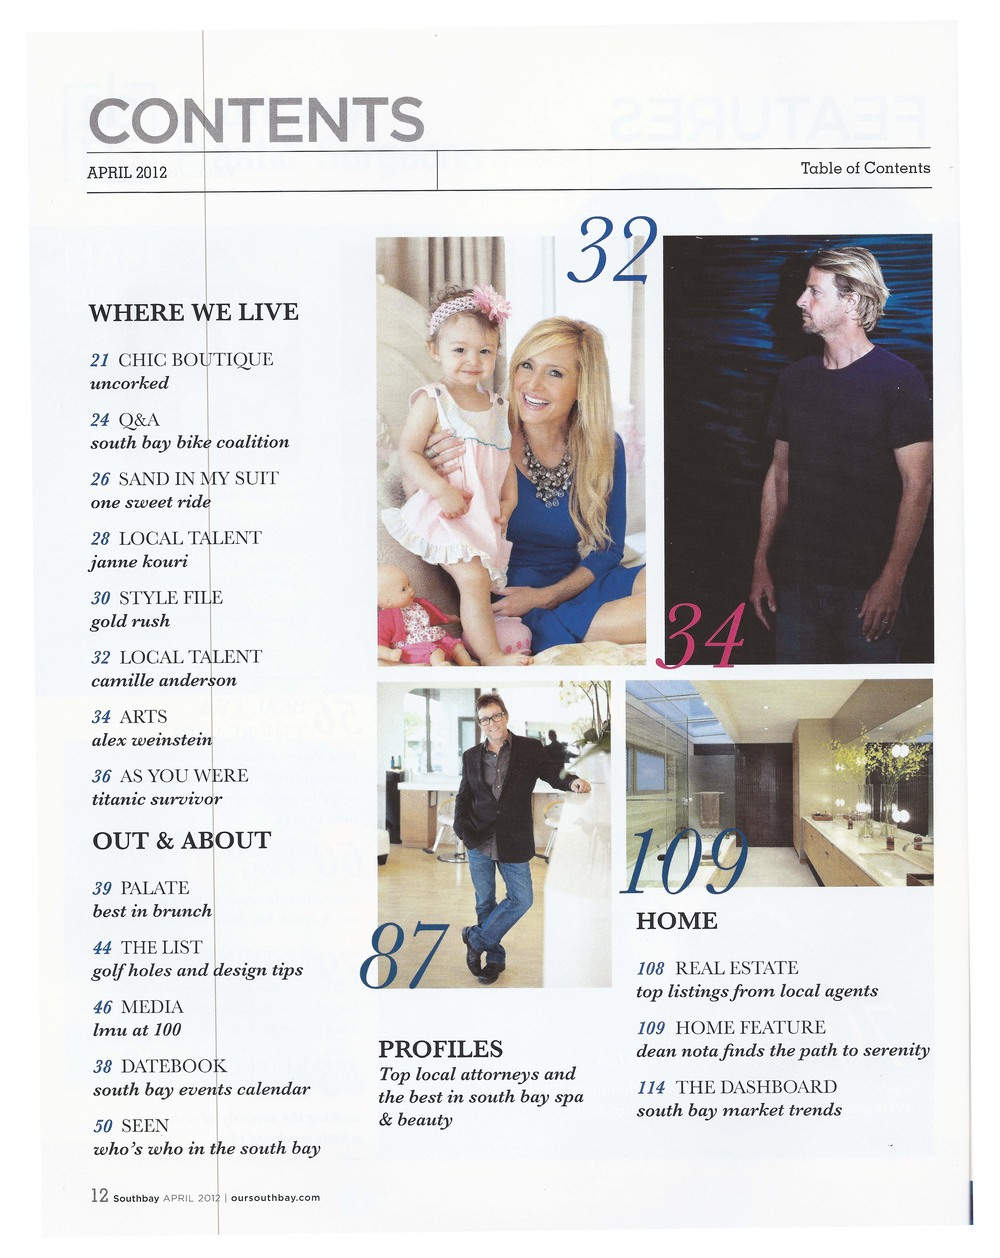 southbay contents page.jpg